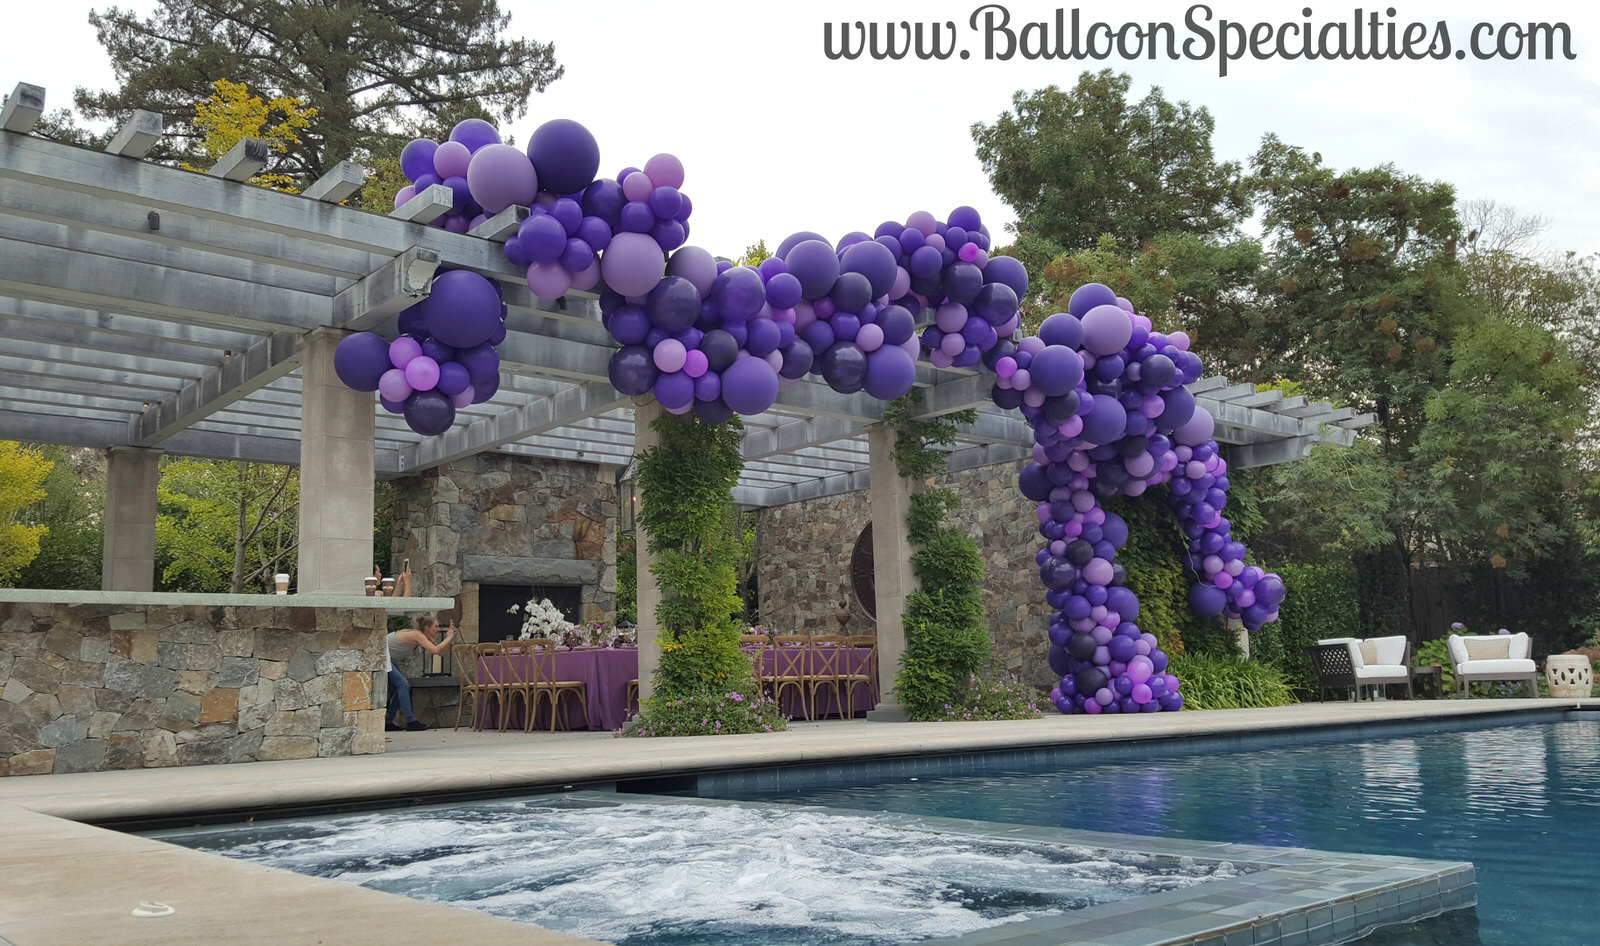 Zim Balloon Specialties Balloon Garlands San Francisco.jpg